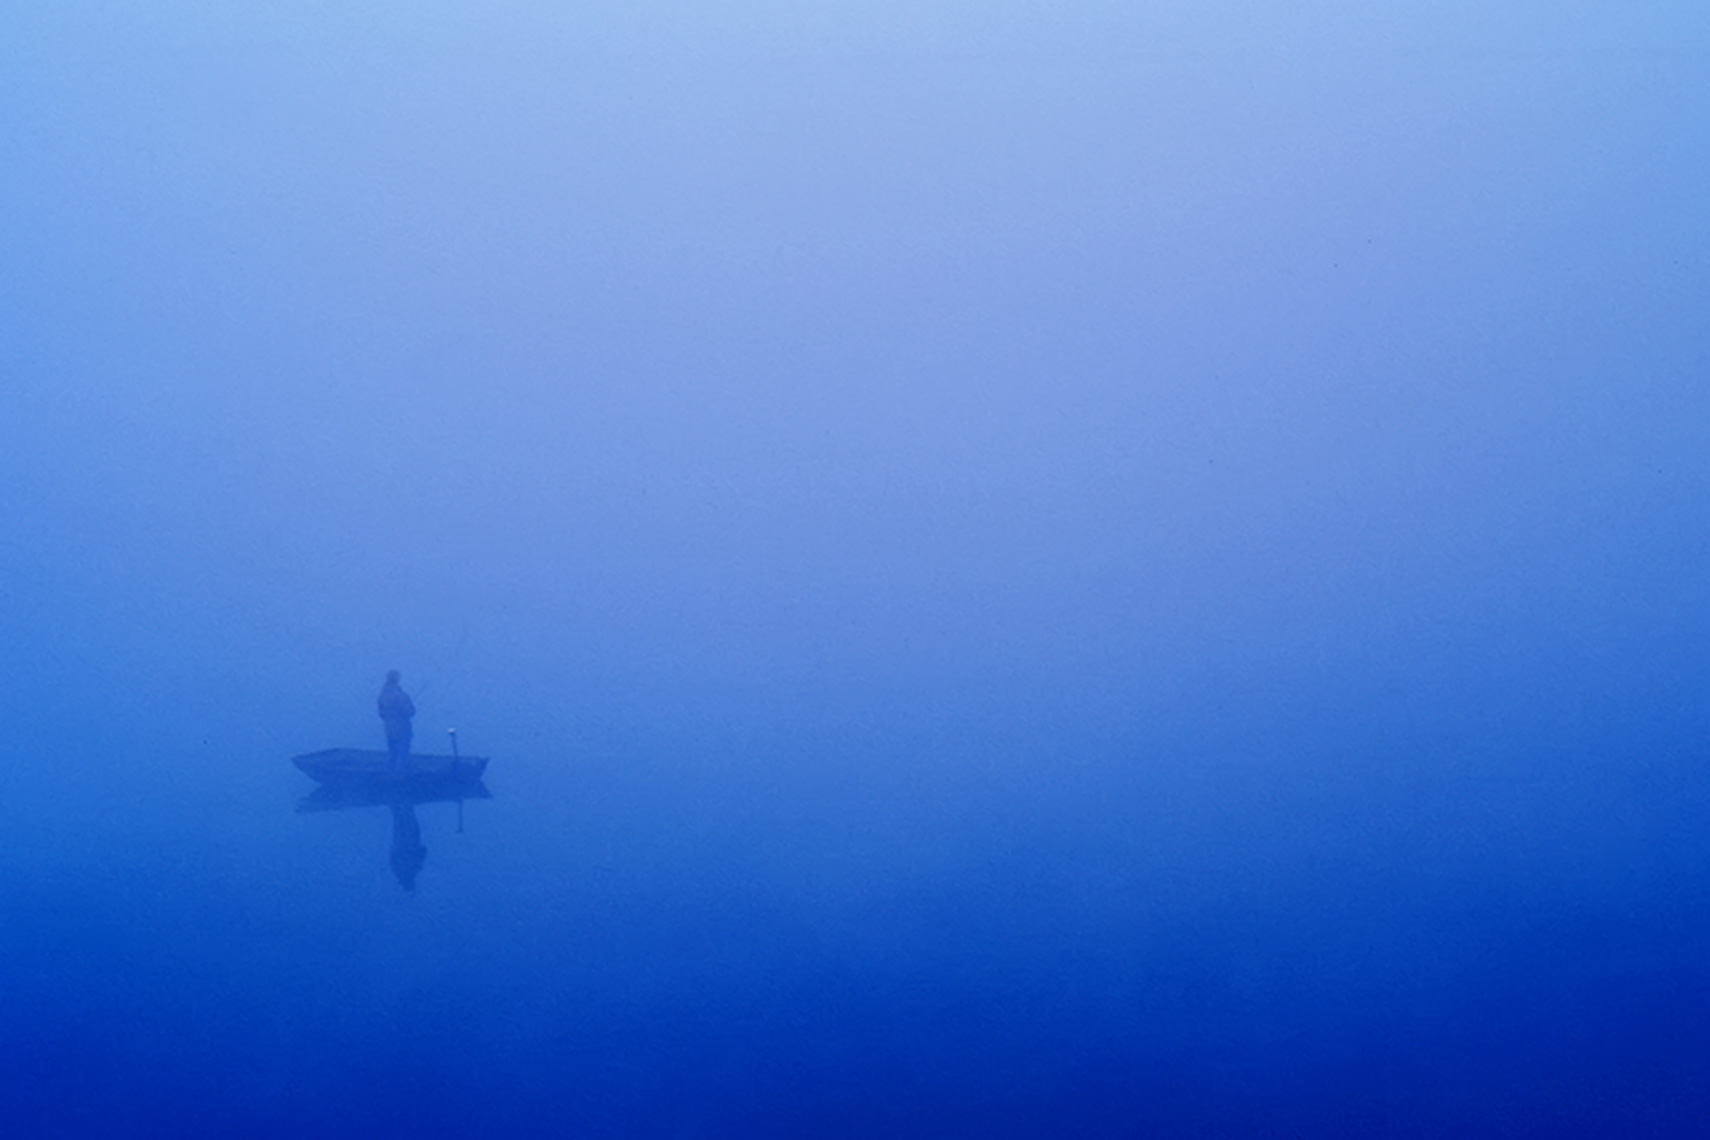 man fishing in boat in blue fog